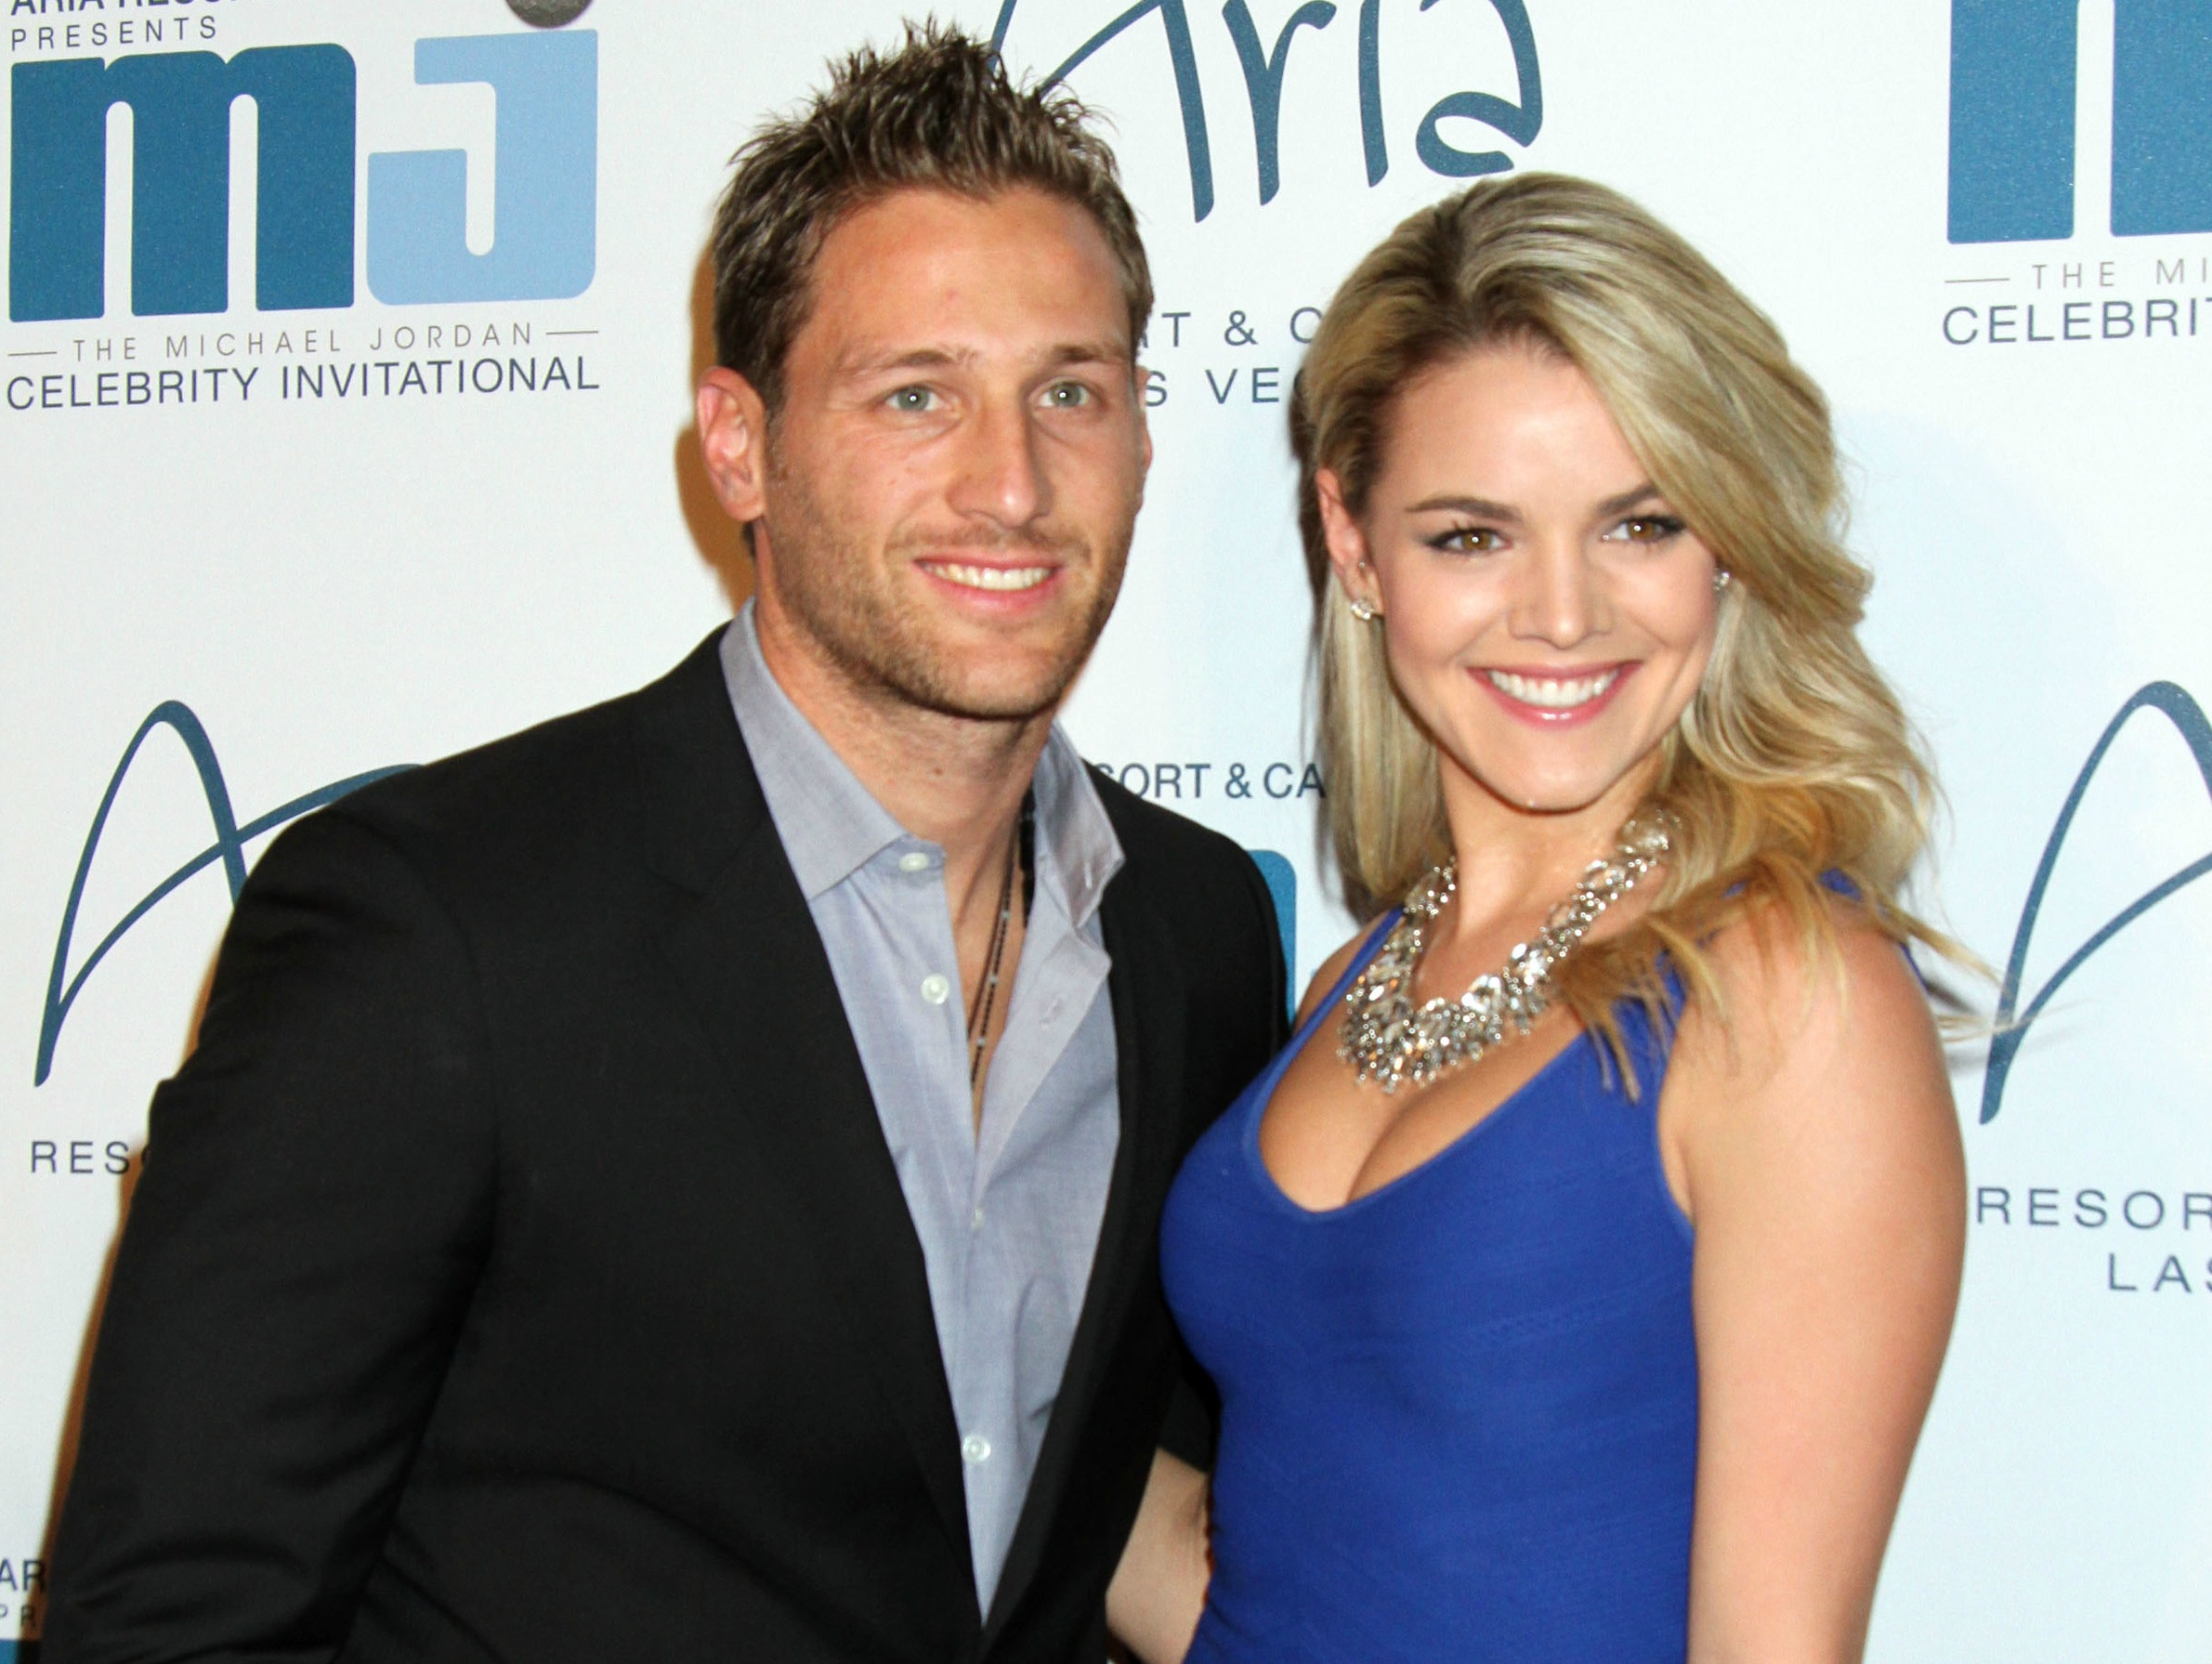 Nikki Ferrell slams fans comment about her relationship with Juan Pablo Galavis